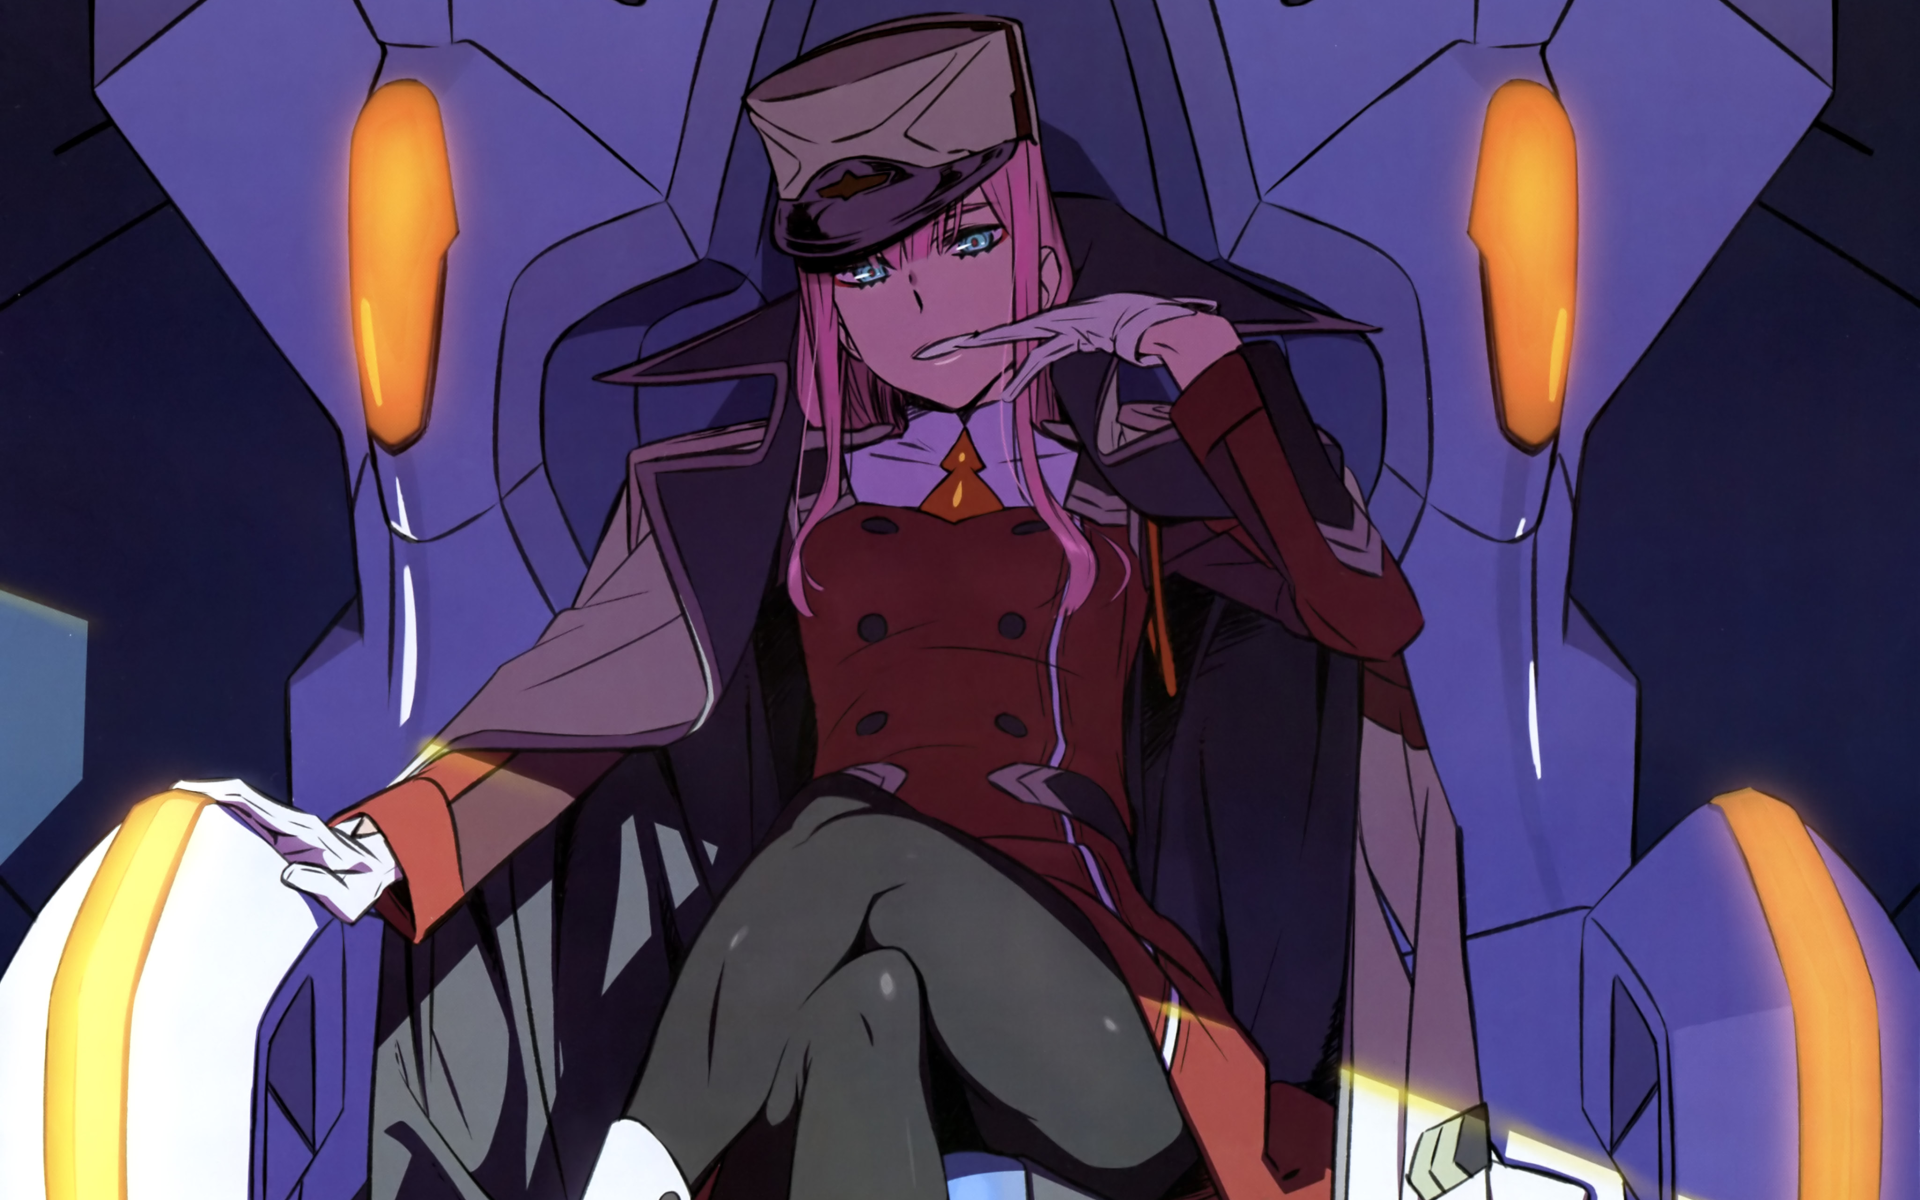 Anime - Darling in the FranXX  Zero Two (Darling in the FranXX) Long Hair Pink Hair Blue Eyes Hat Glove Smile Wallpaper